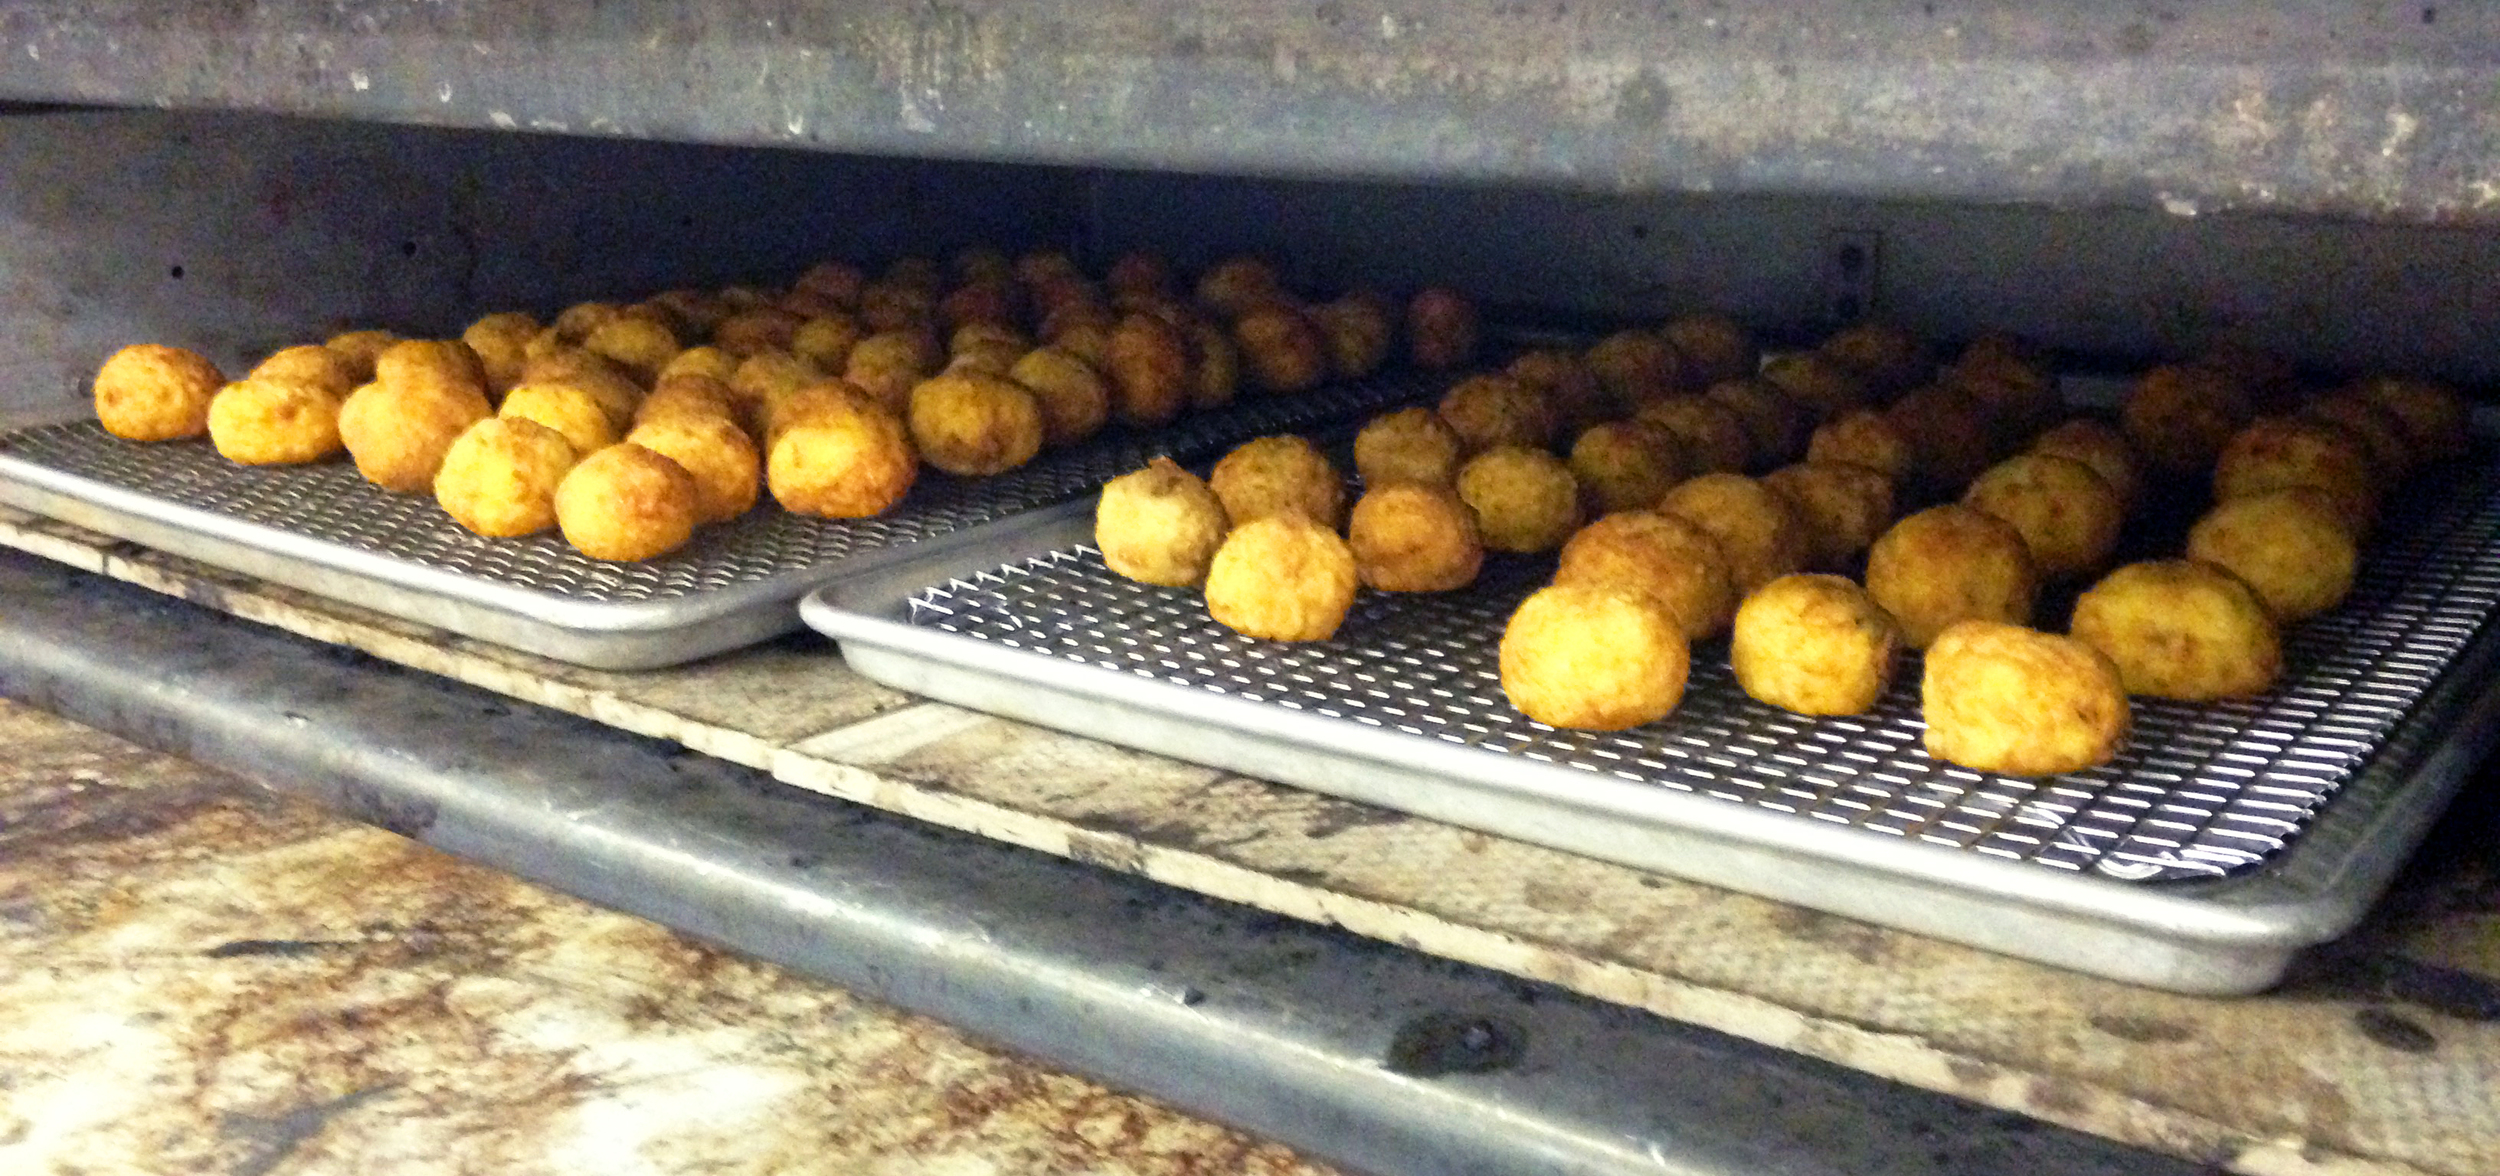 The fried arancini were kept warm in the deck oven before service.